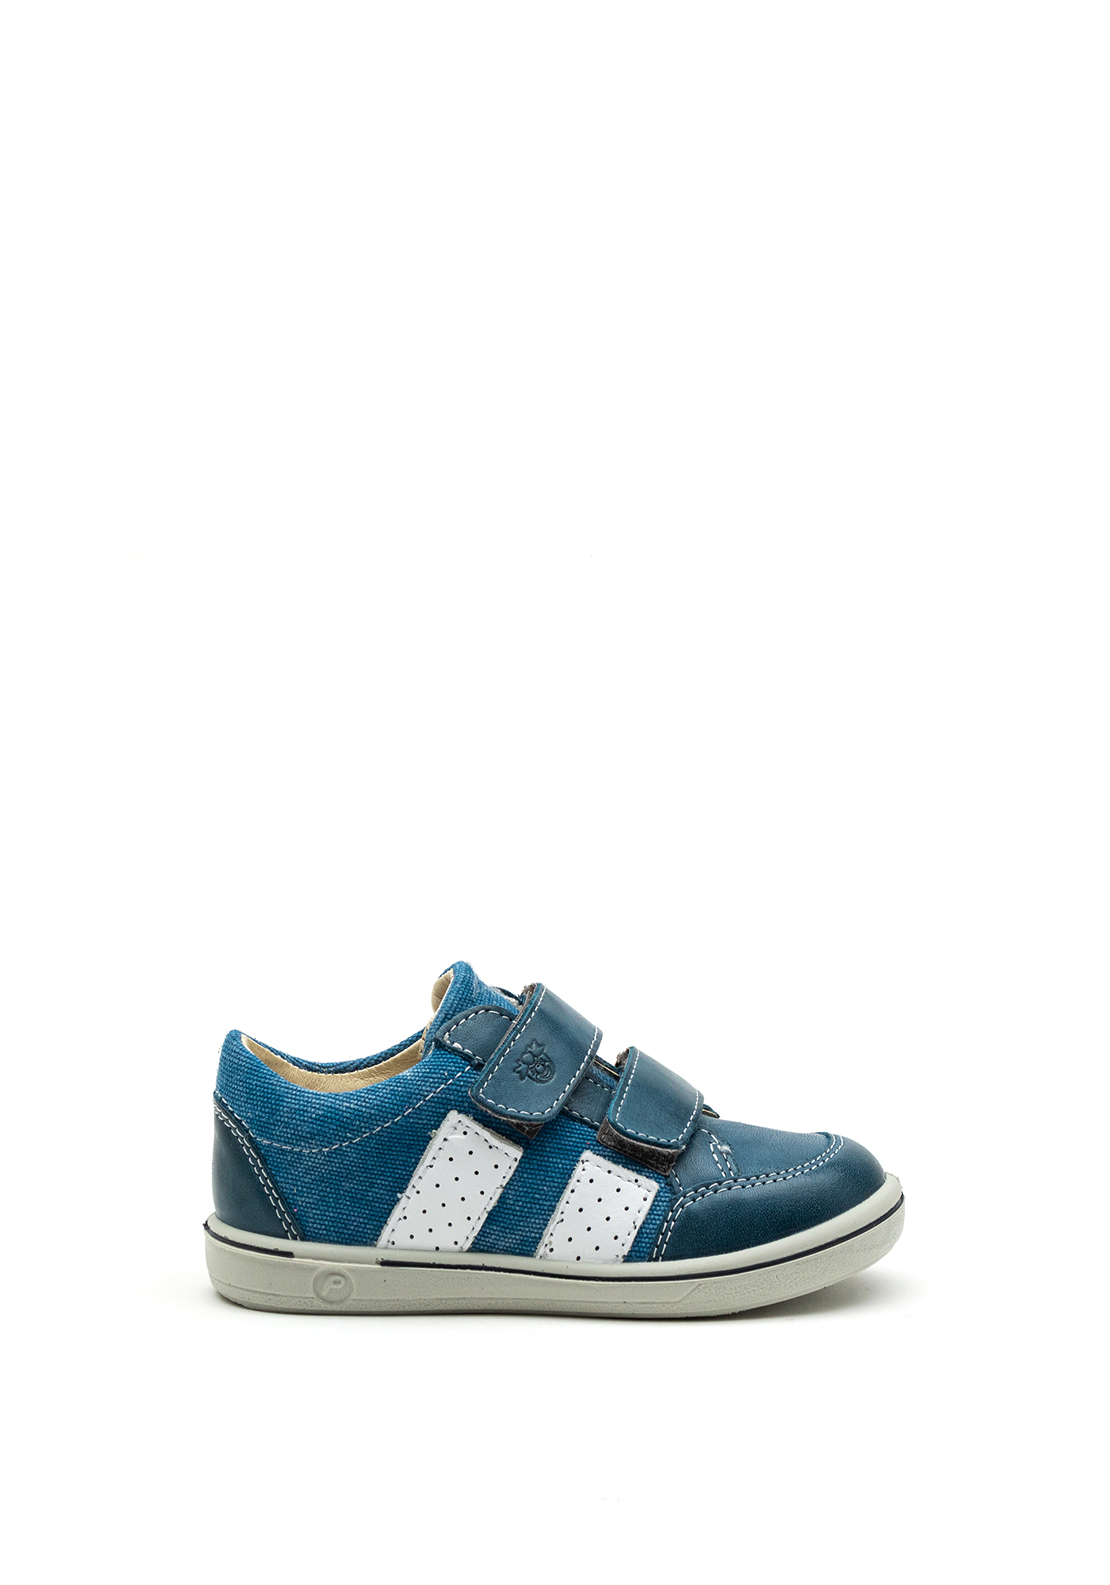 Pepino Baby Boys Leather Velcro Strap Shoes, Blue